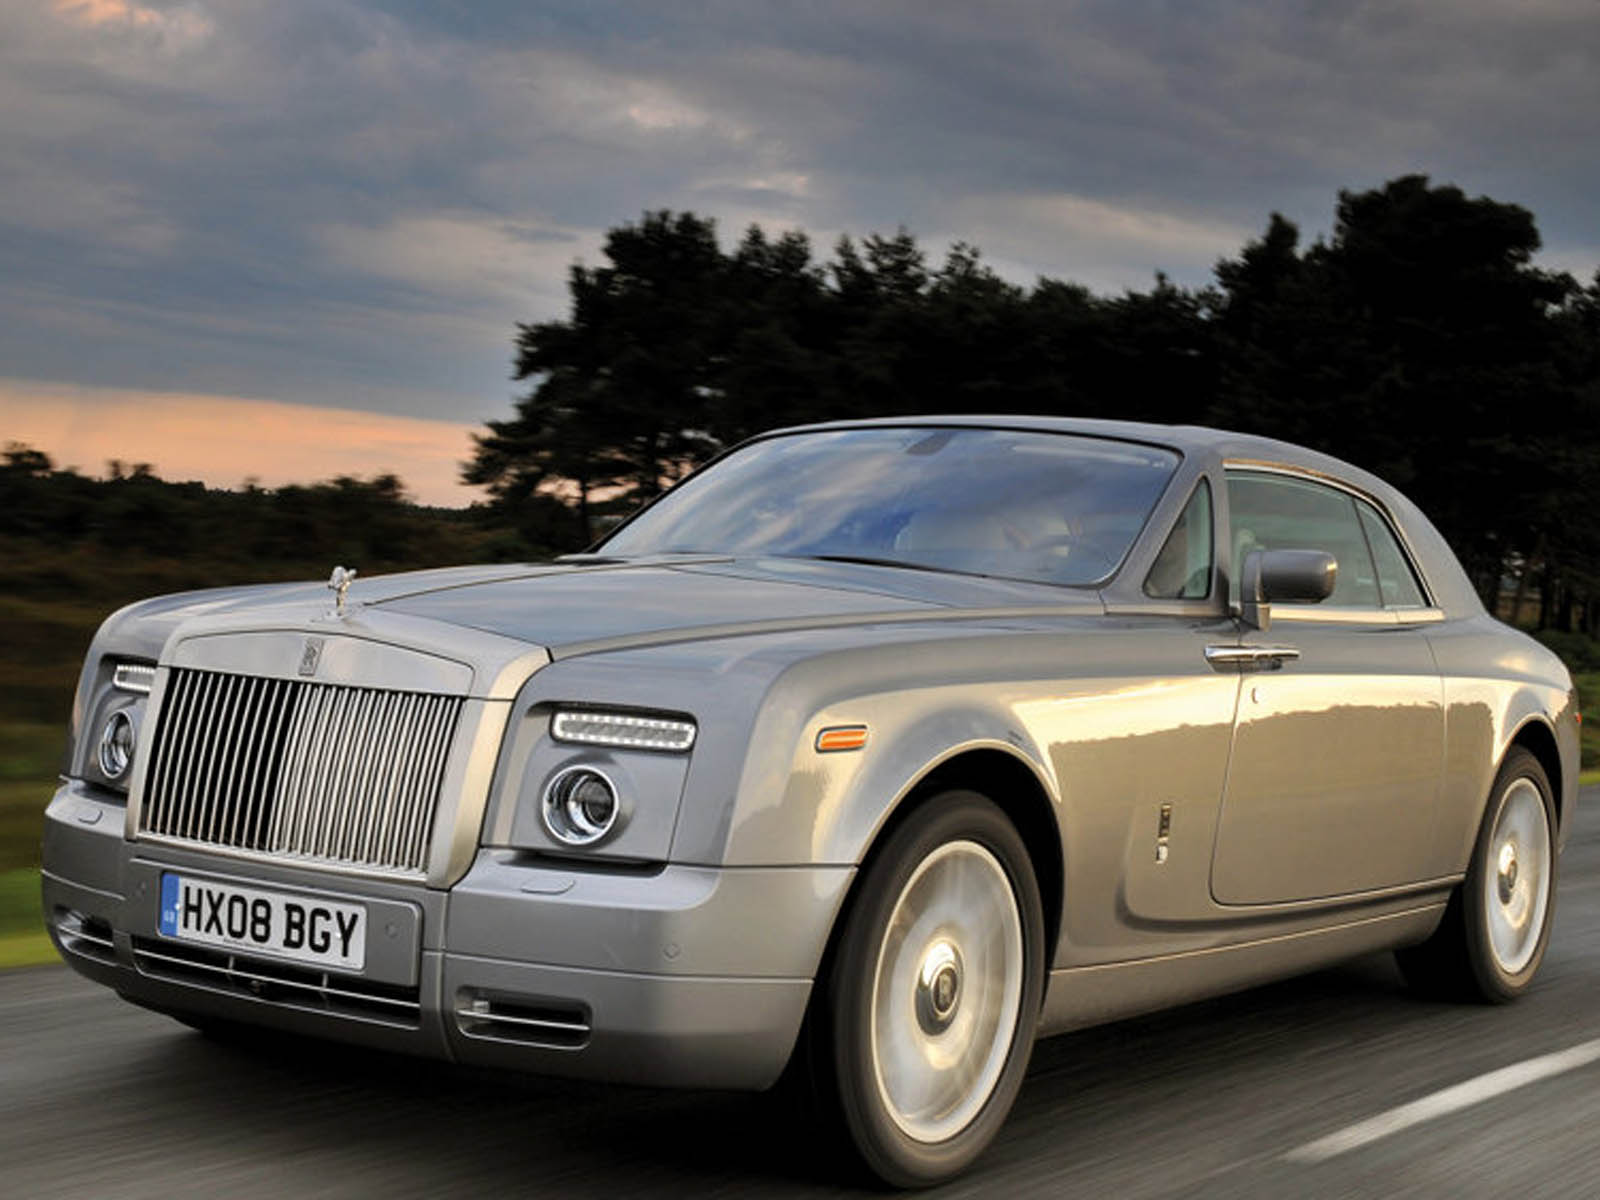 Wallpapers: Rolls Royce Phantom Coupe Car Wallpapers